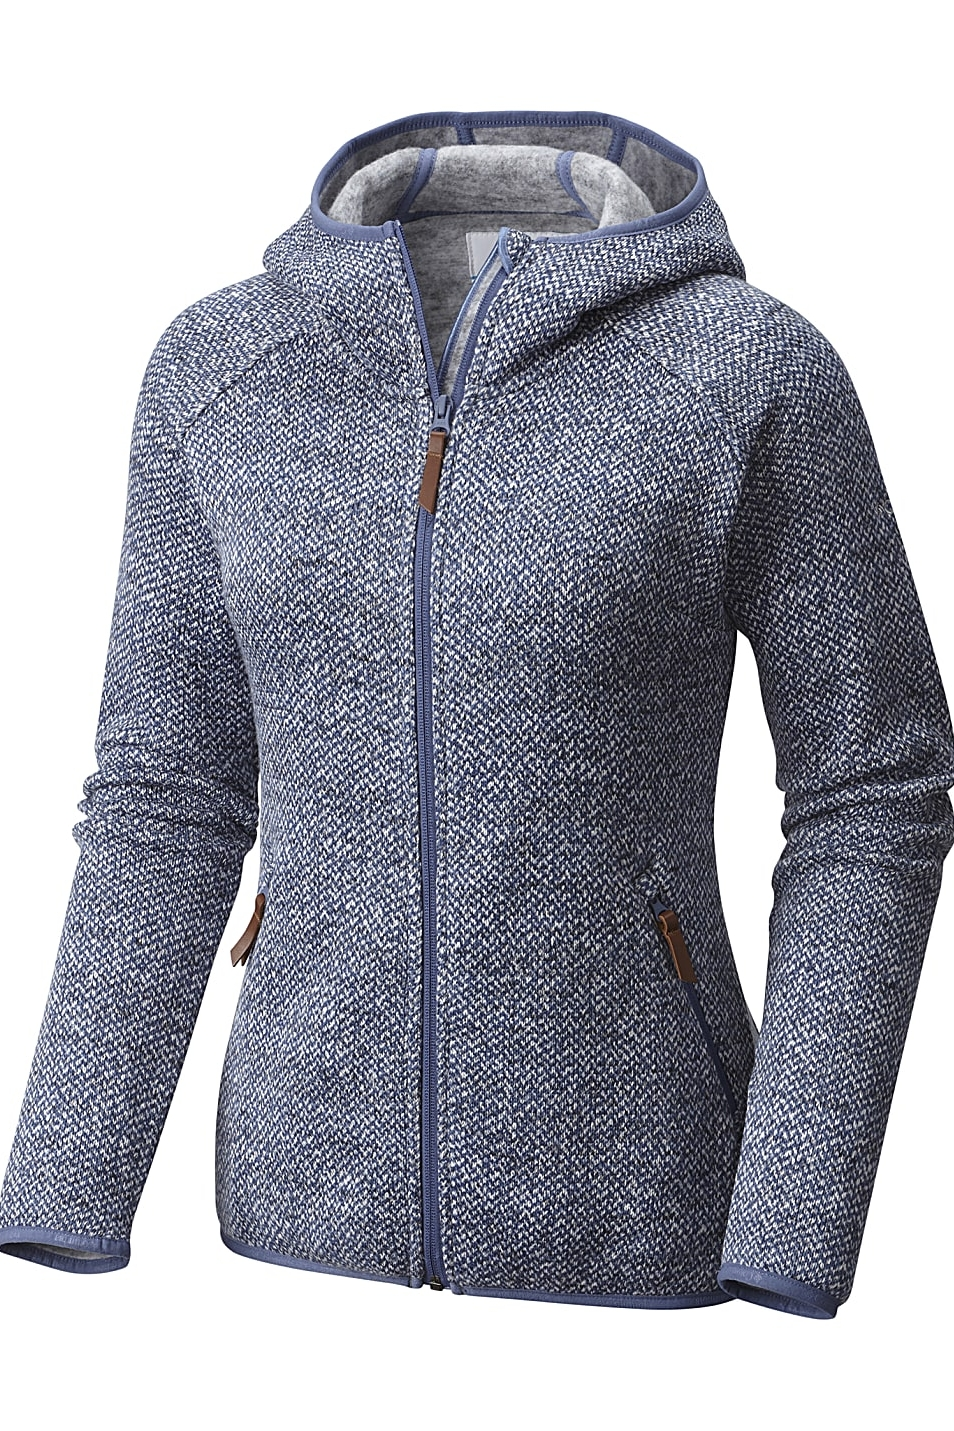 columbia-chillin-fleecejacke-damen-blau.jpg